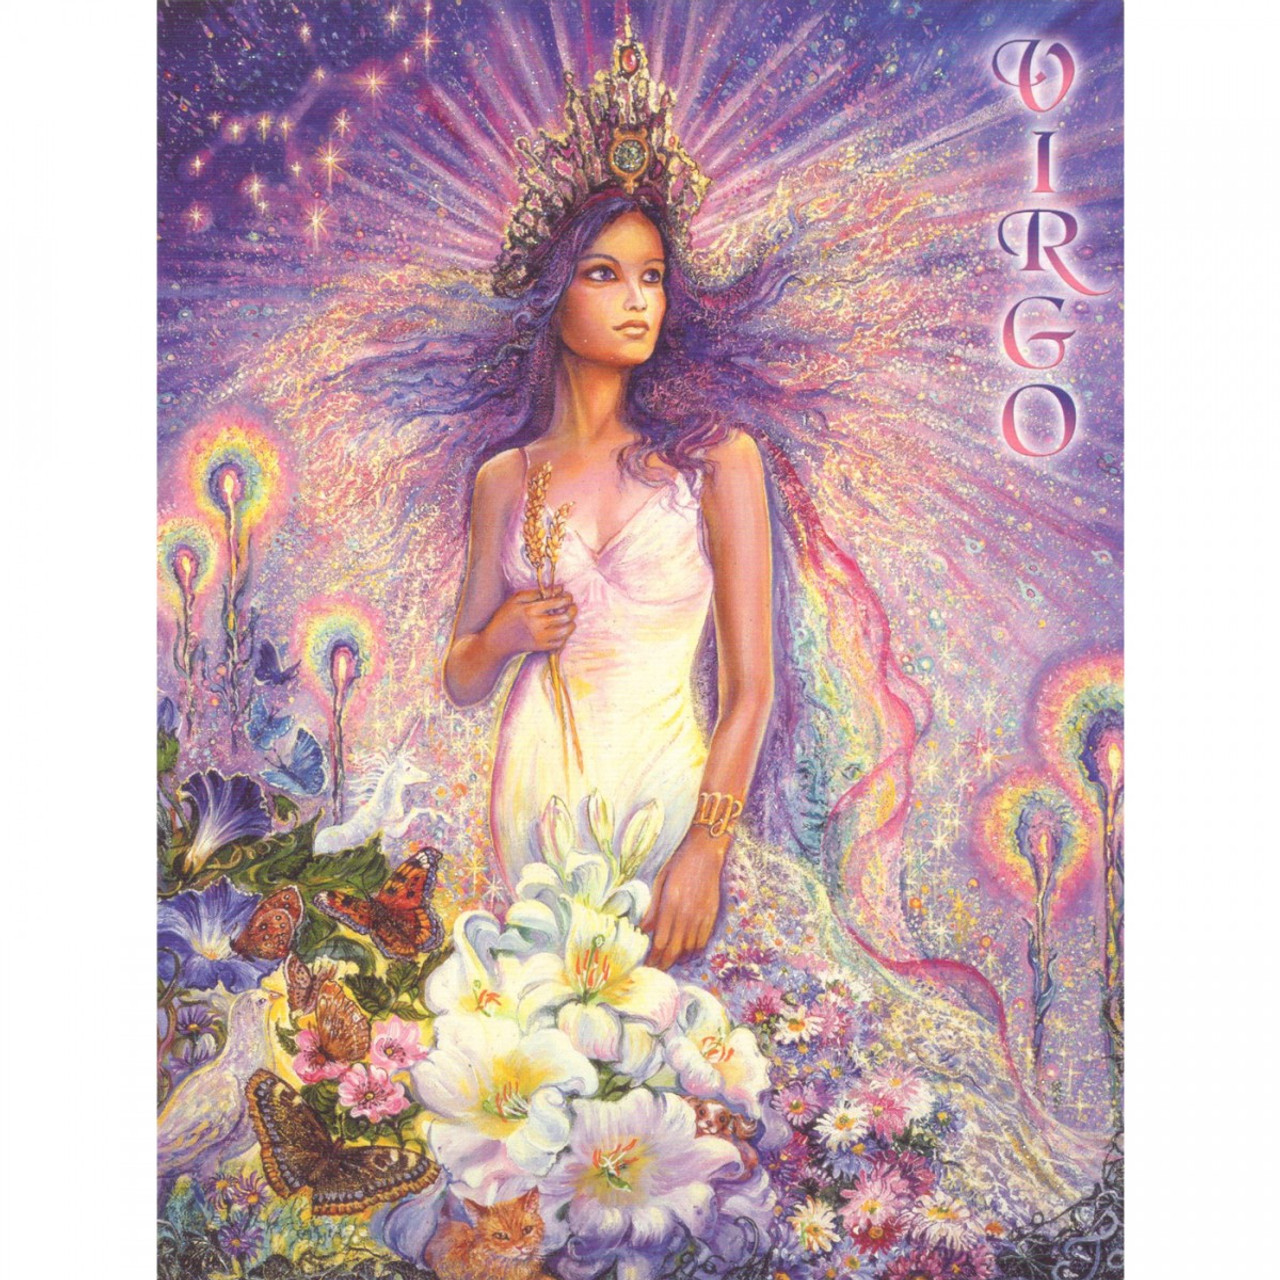 Virgo Greeting Card (August 23 - September 22) by Josephine Wall